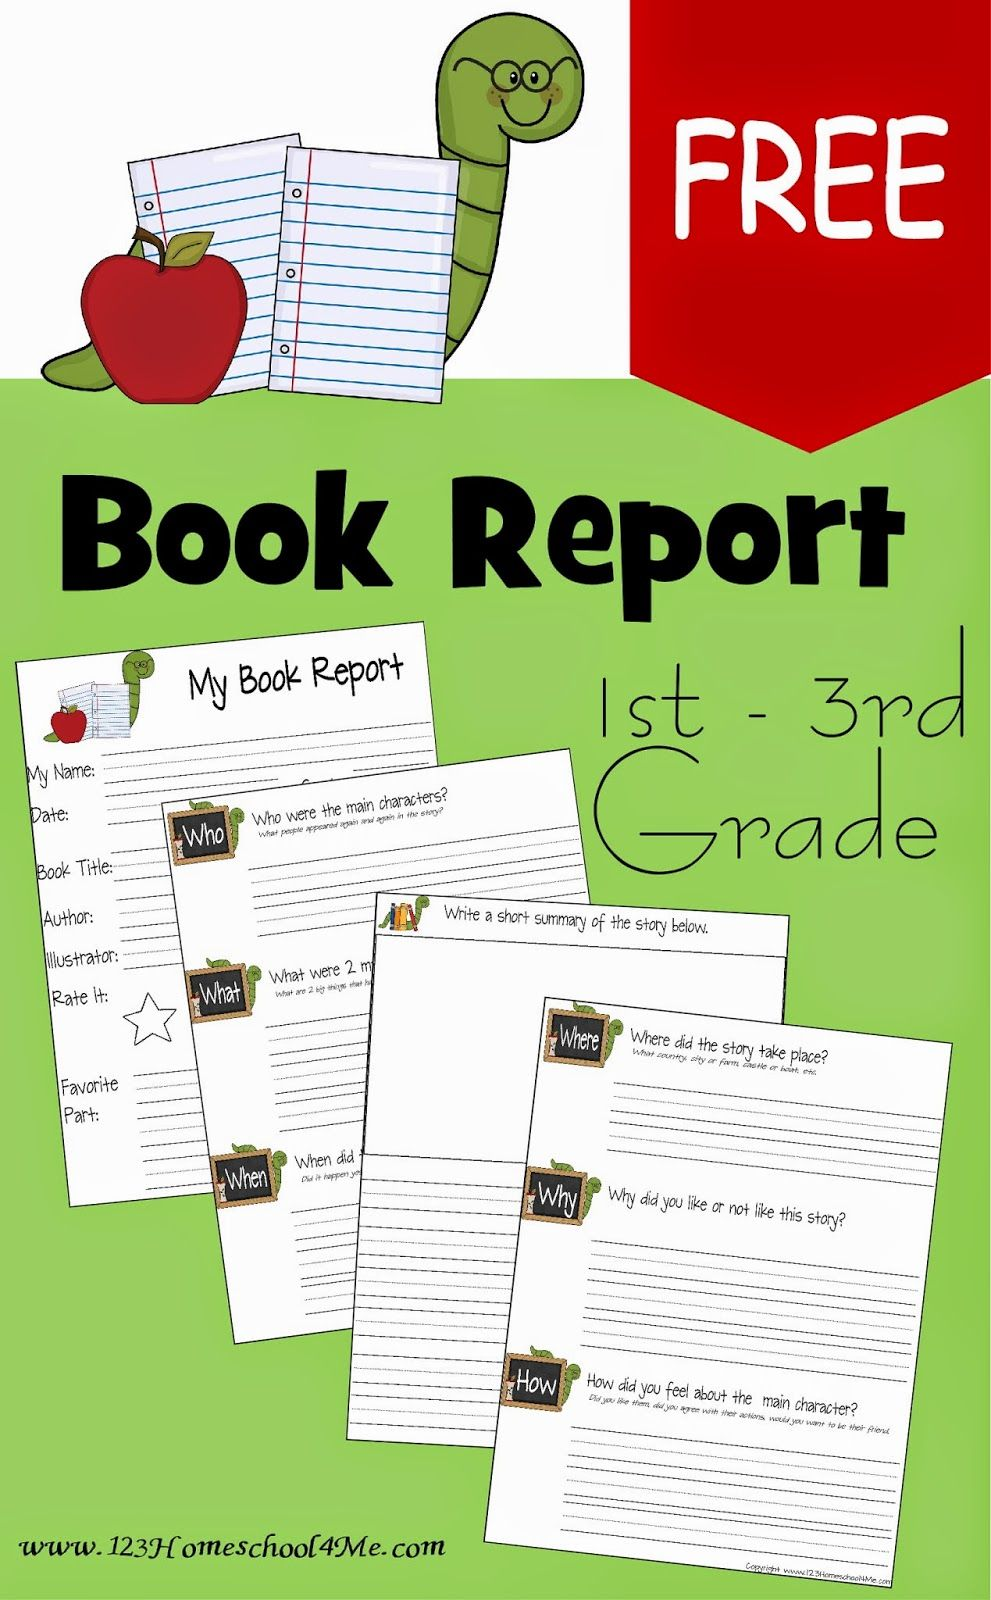 Book Cover Printable Questions : Book report forms free printable for